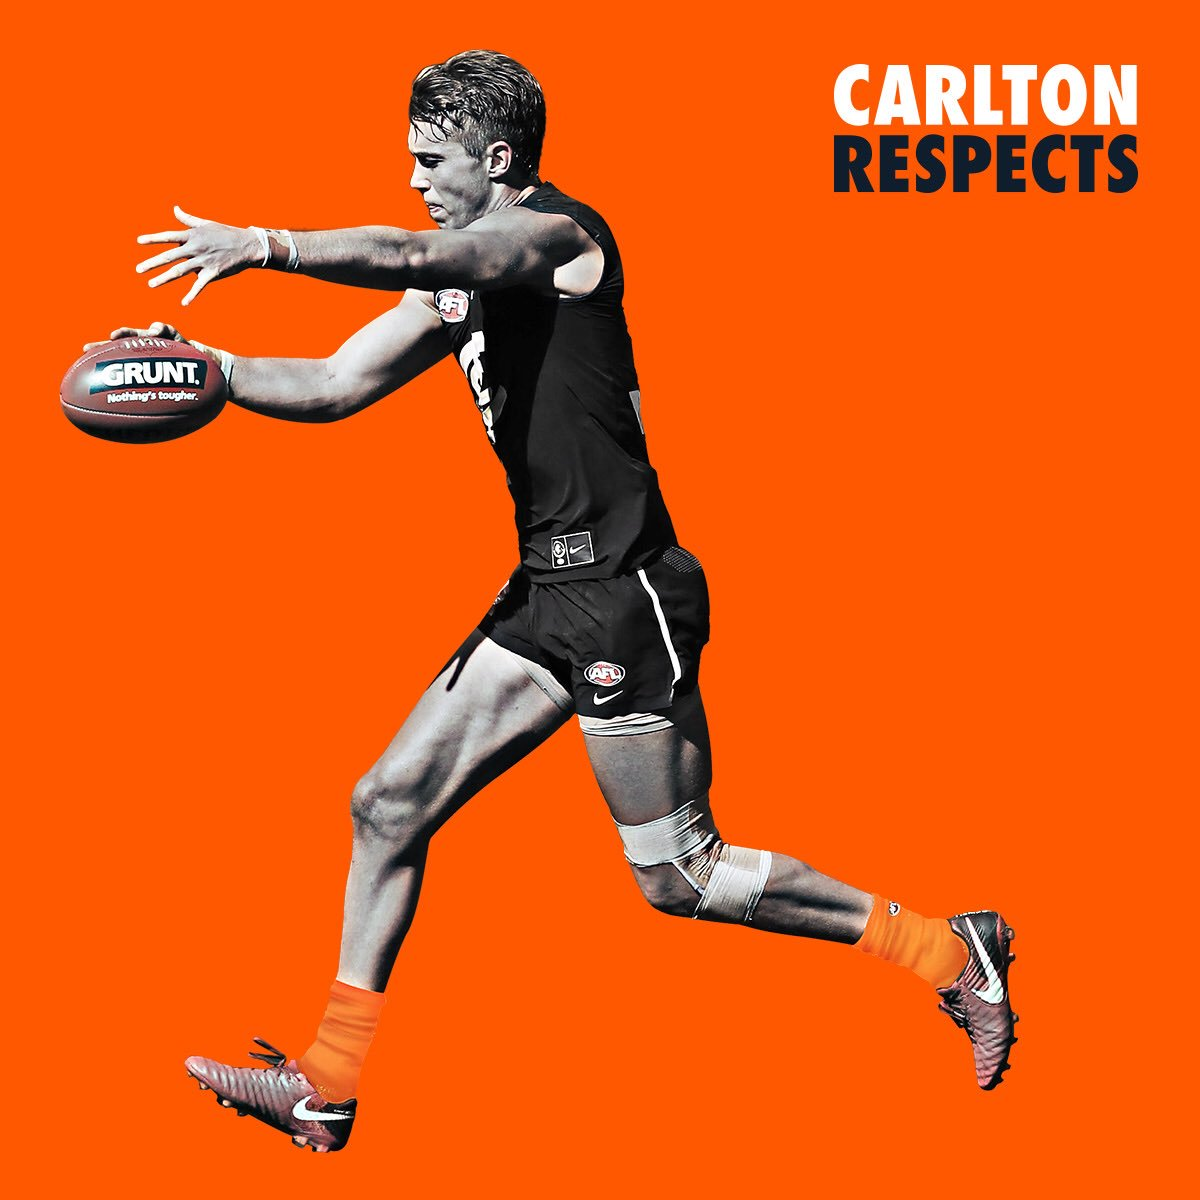 Ill be wearing orange socks tomorrow for our Carlton Respects game - Hope to see you at the G tomorrow! #CarltonRespects